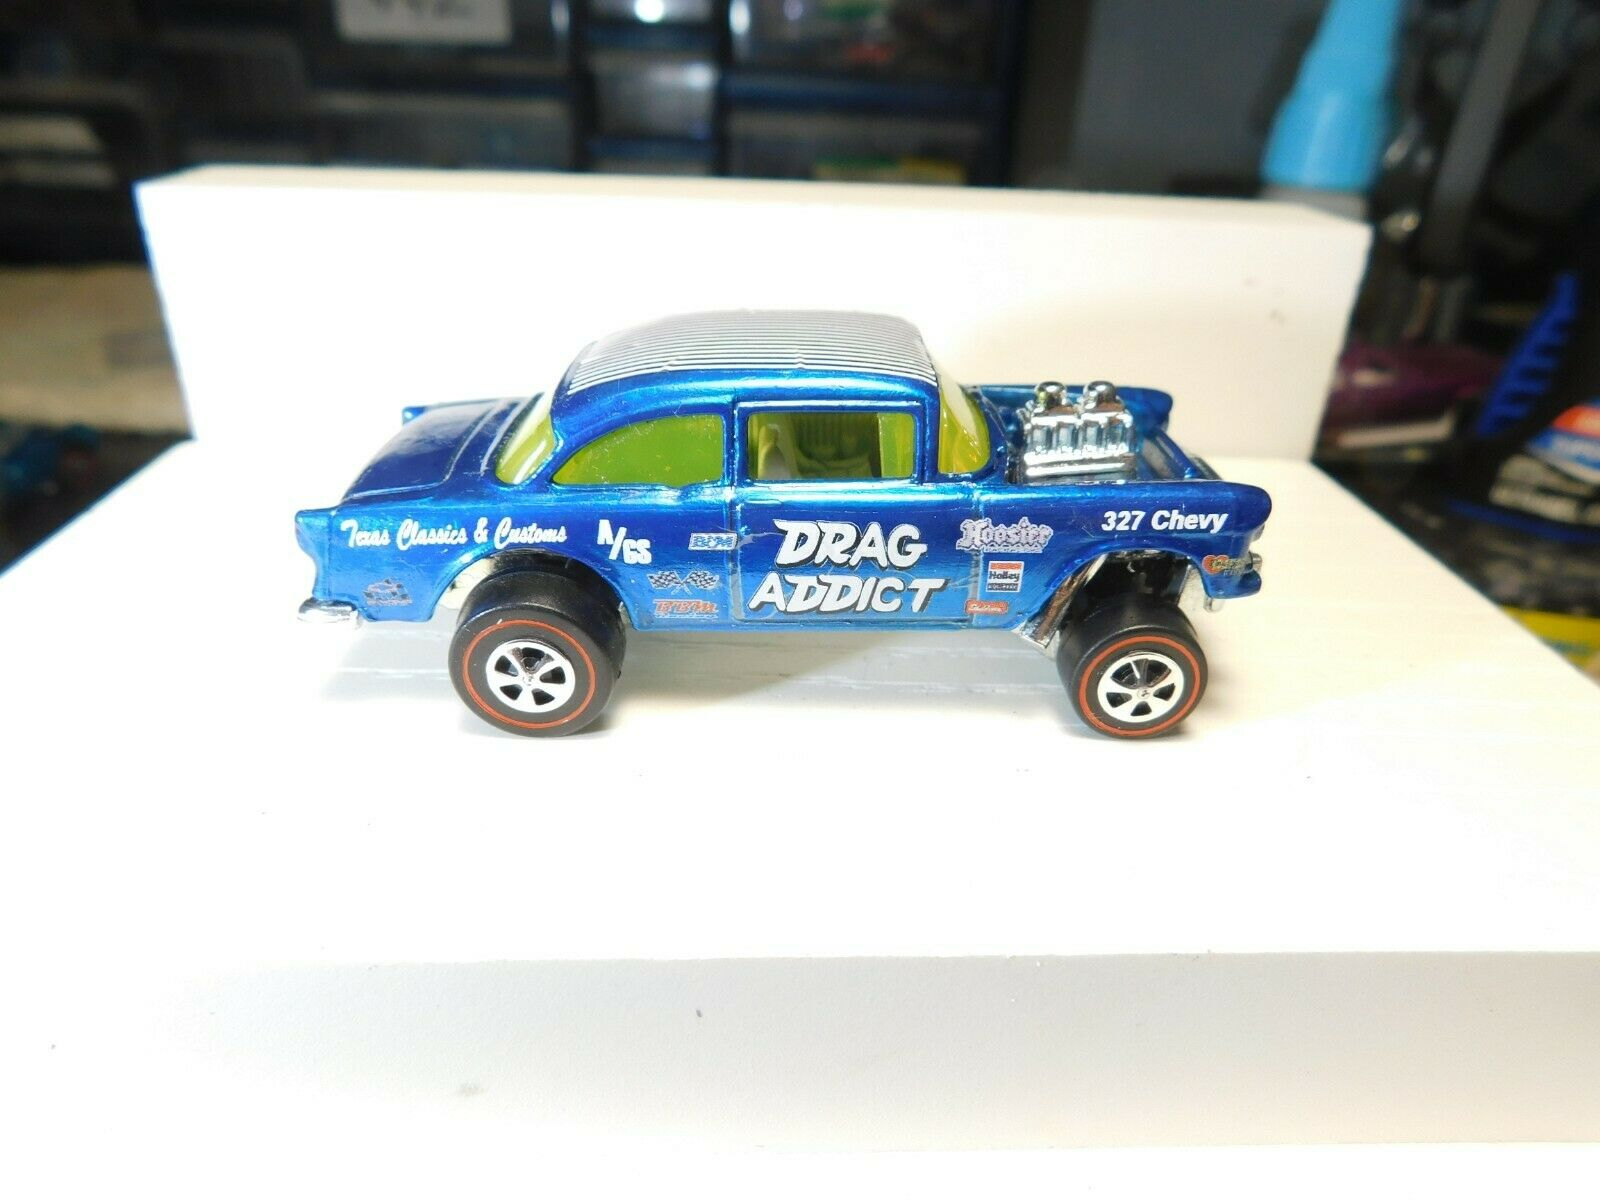 55 Chevy Bel Air Gasser Hot Wheels Redline Resto-Converted Drag Addict